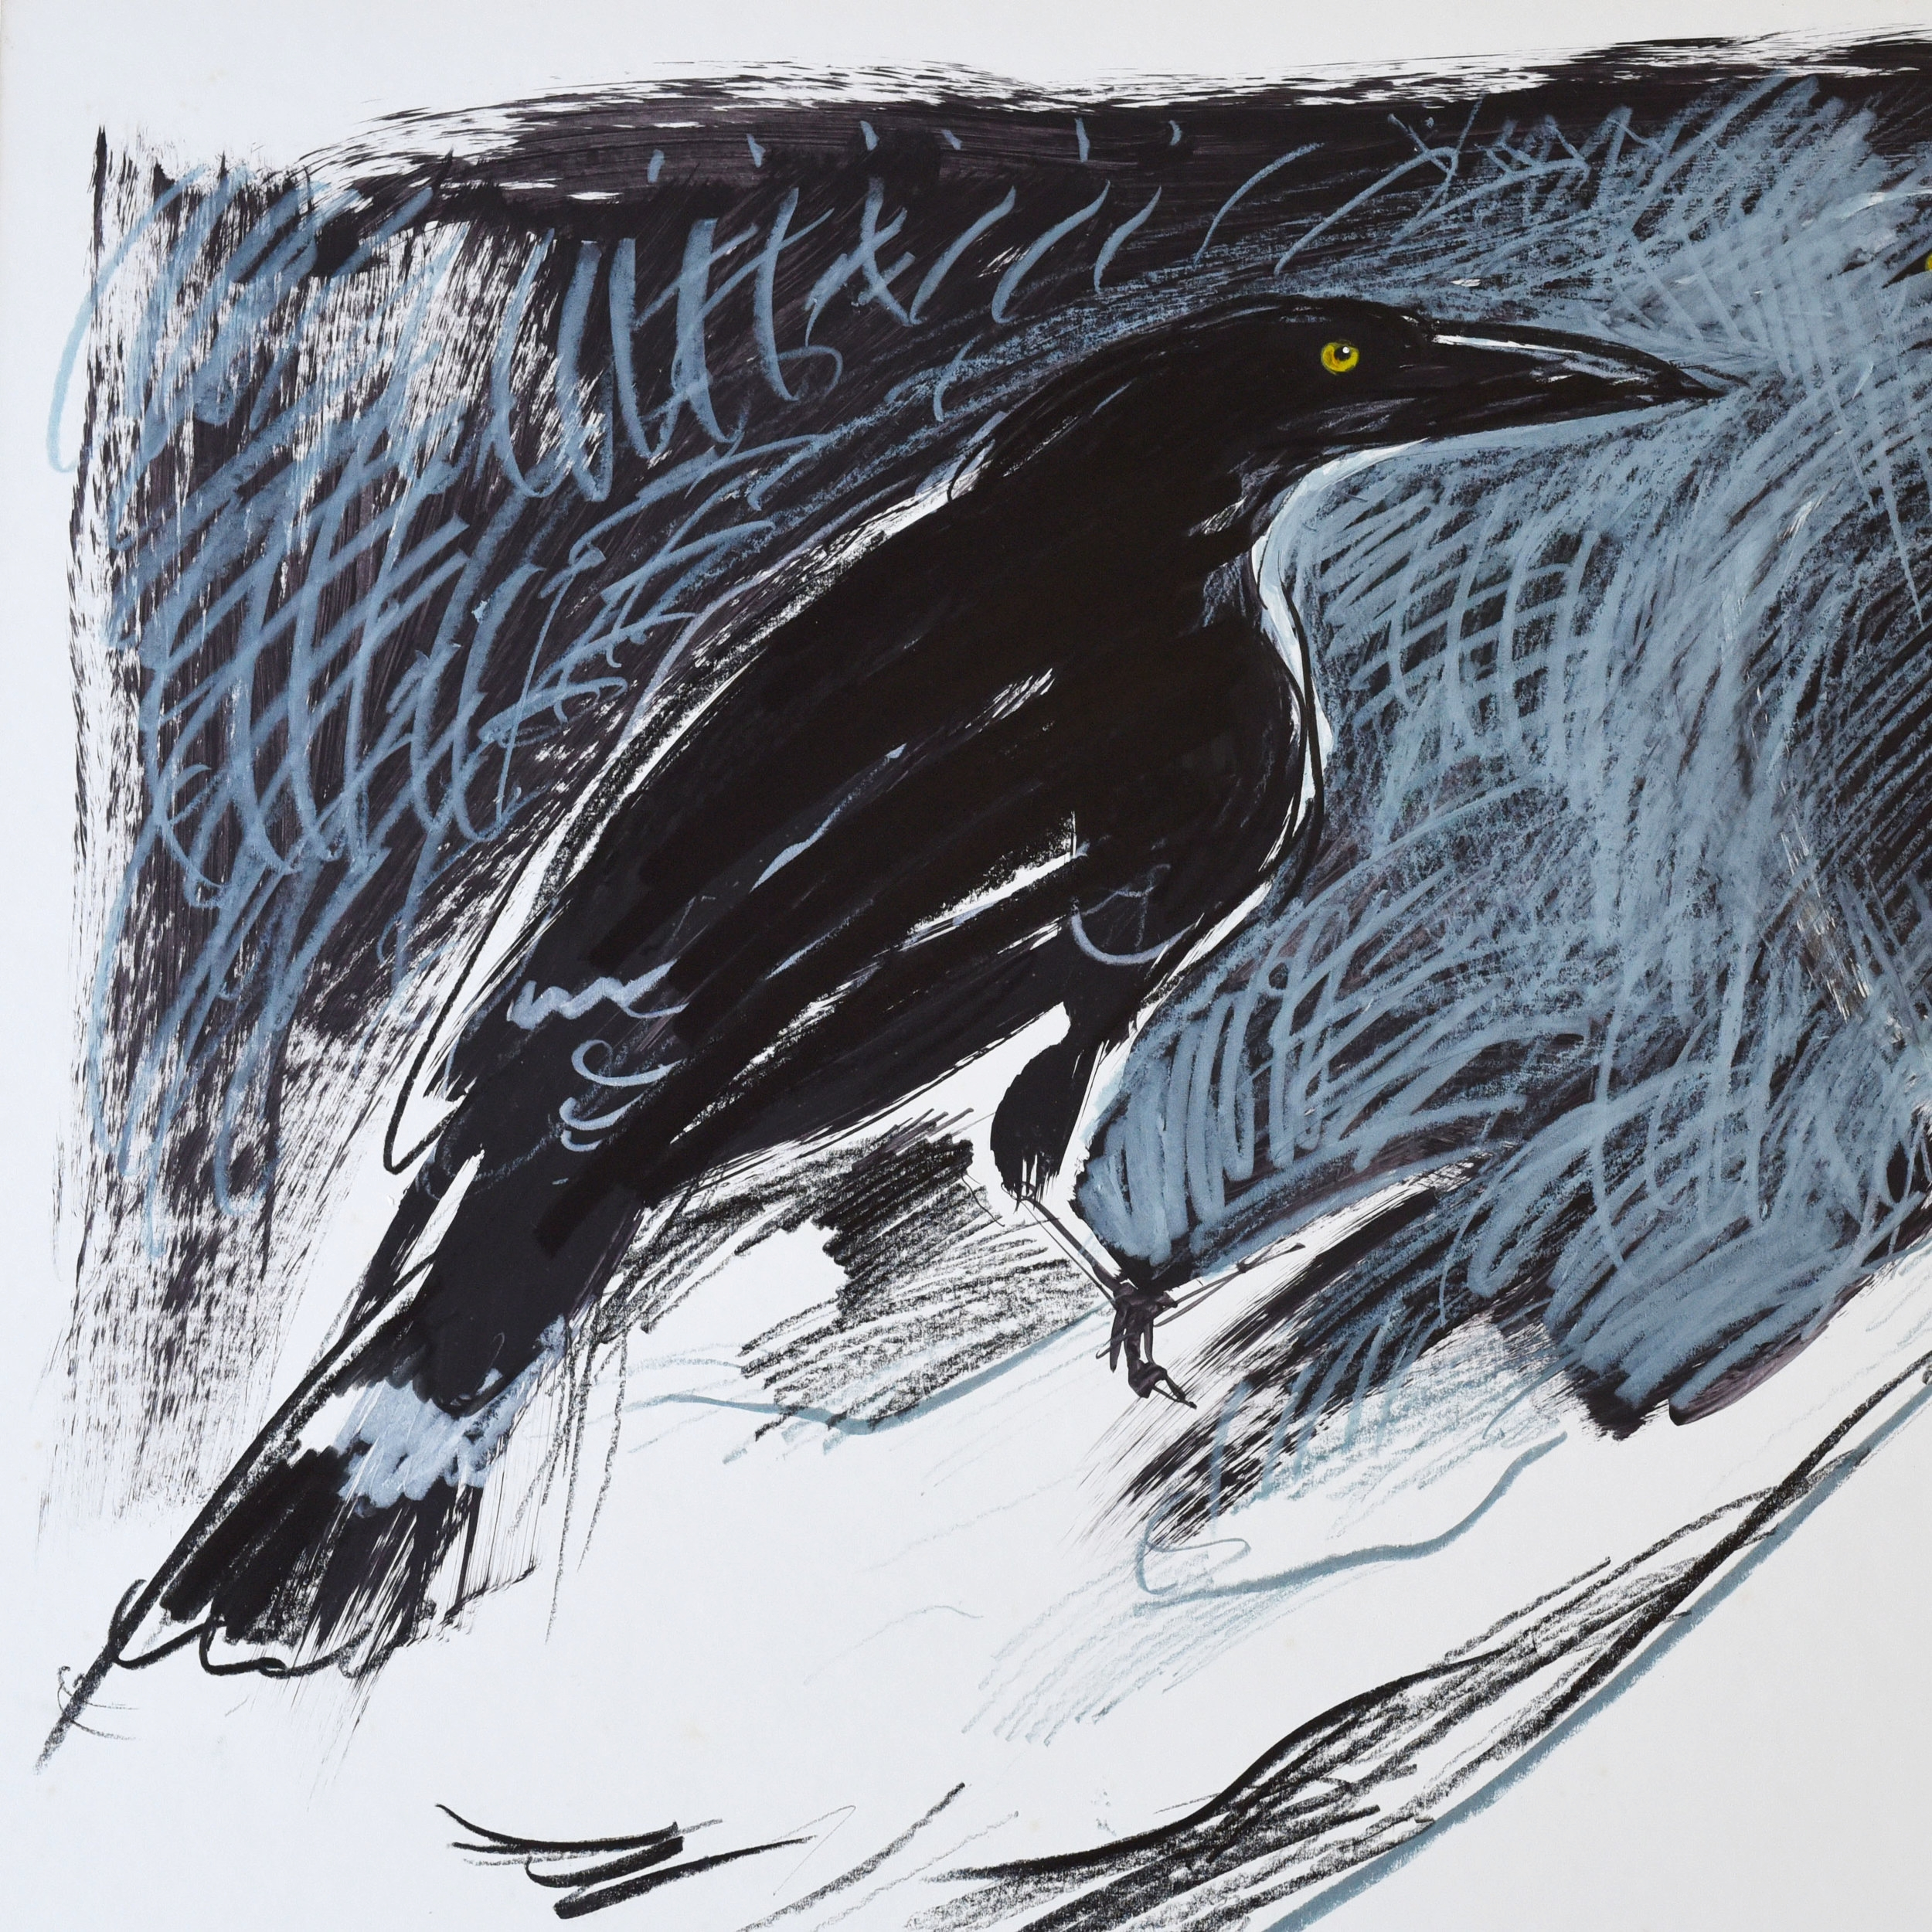 Crayon and pencil drawing of a black crow